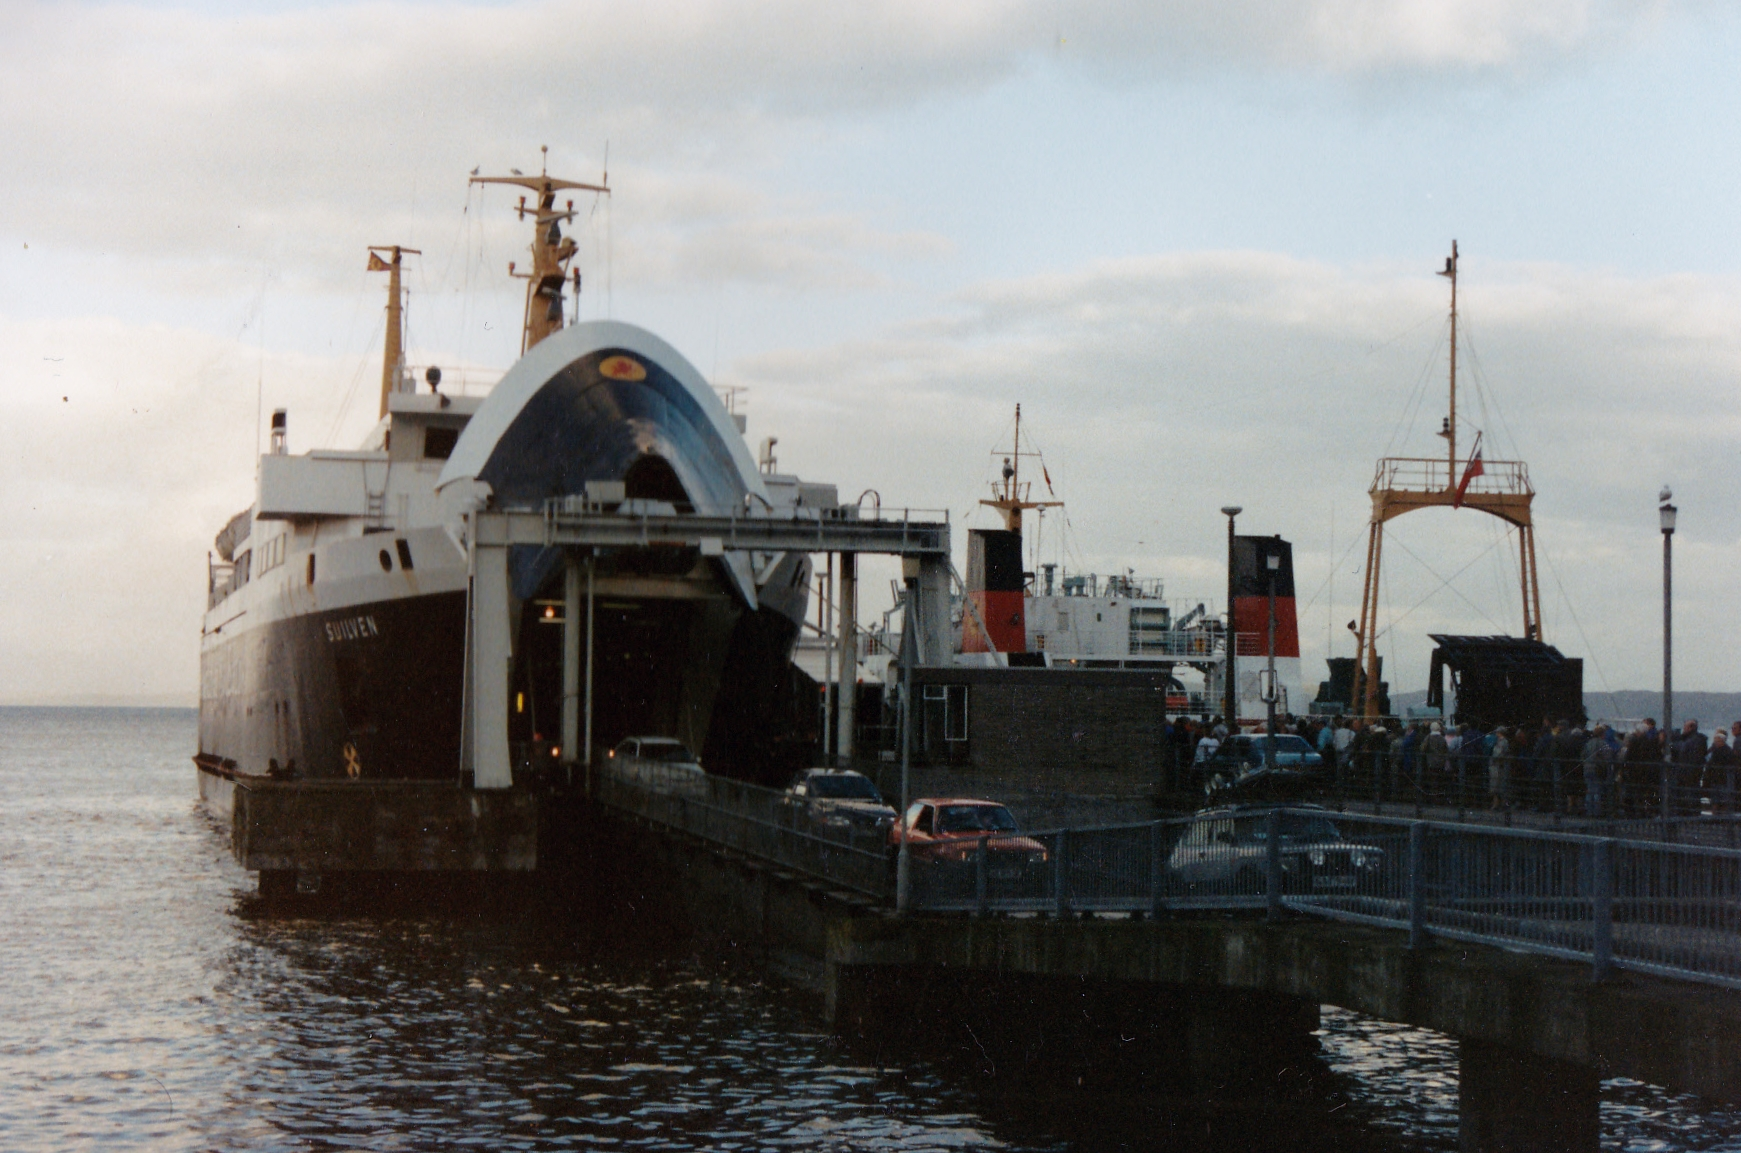 Rare visitor Suilven unloading at Craignure (Jim Aikman Smith)